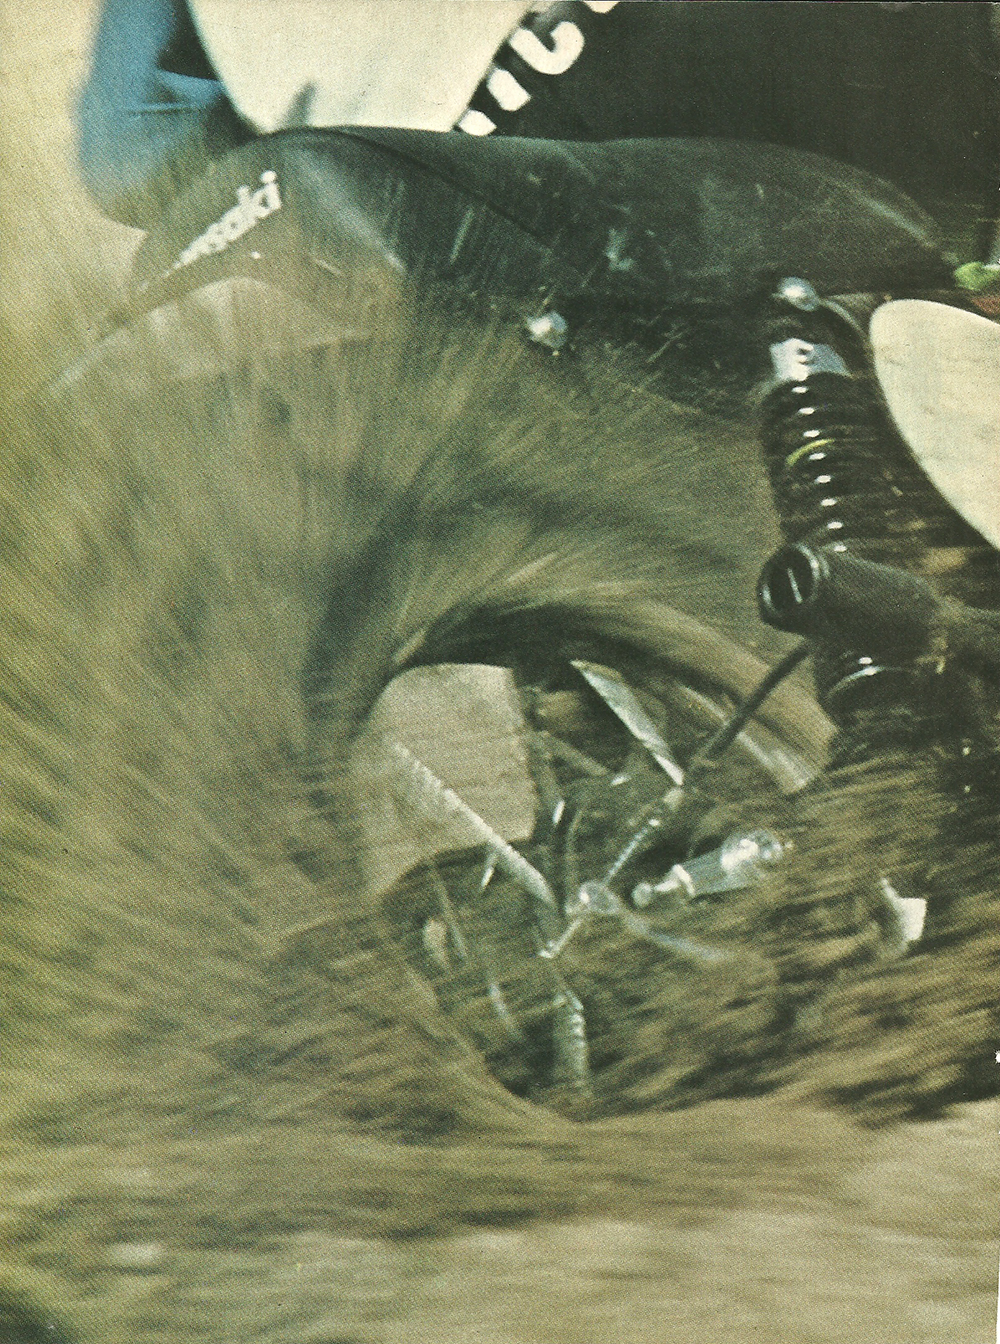 1975 Kawasaki KX 125 250 400 road test 1.jpg